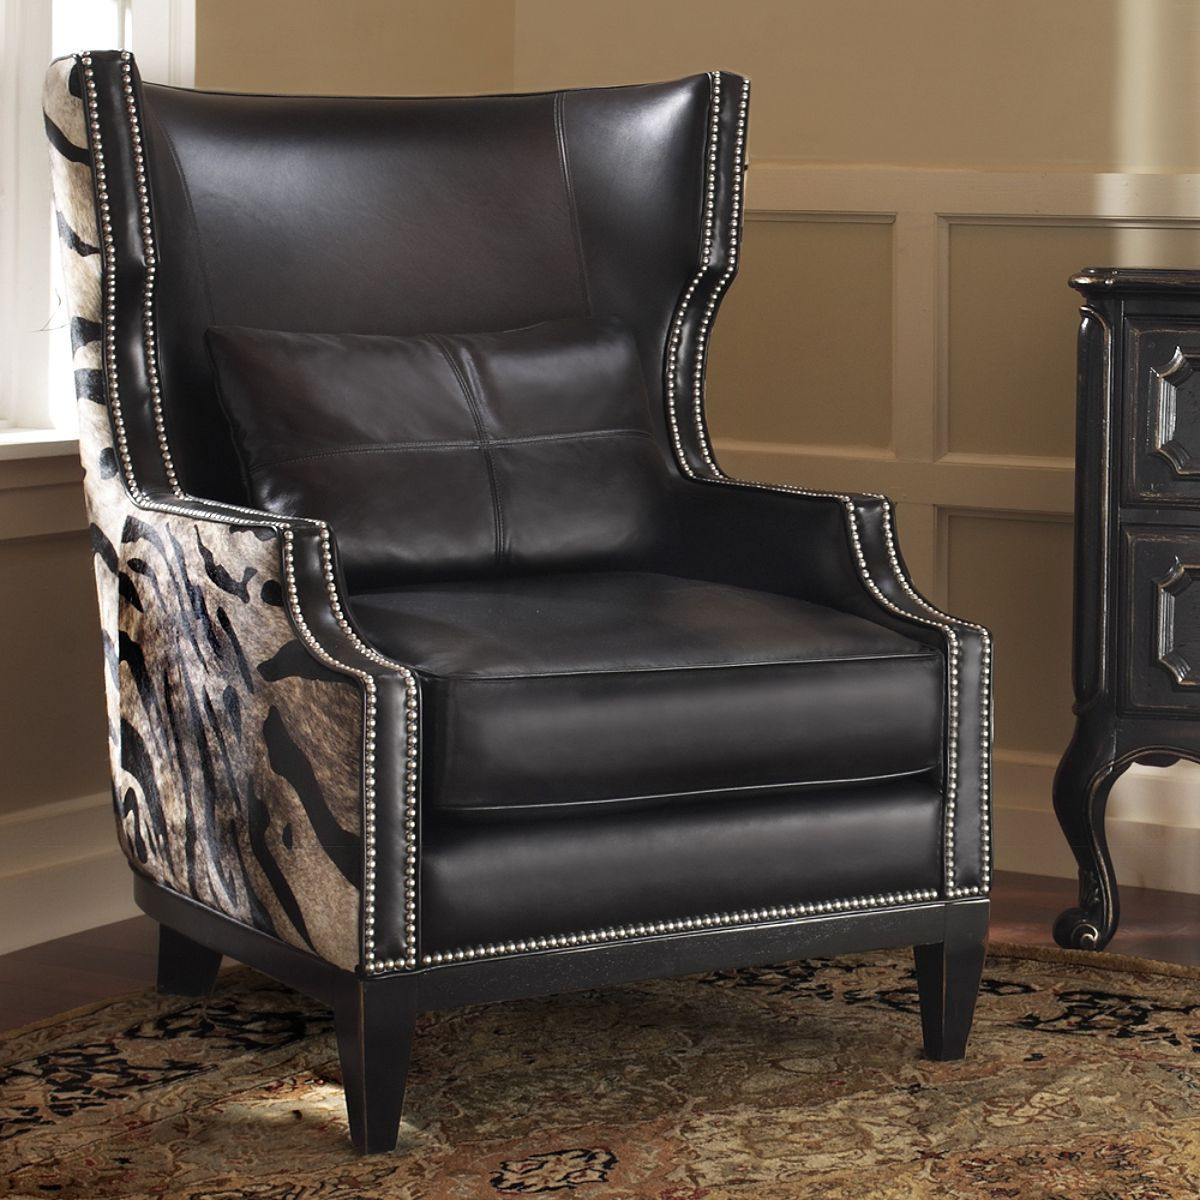 Pretoria Wingback Chair - Frontgate (Four-legged Luxury Chair ...